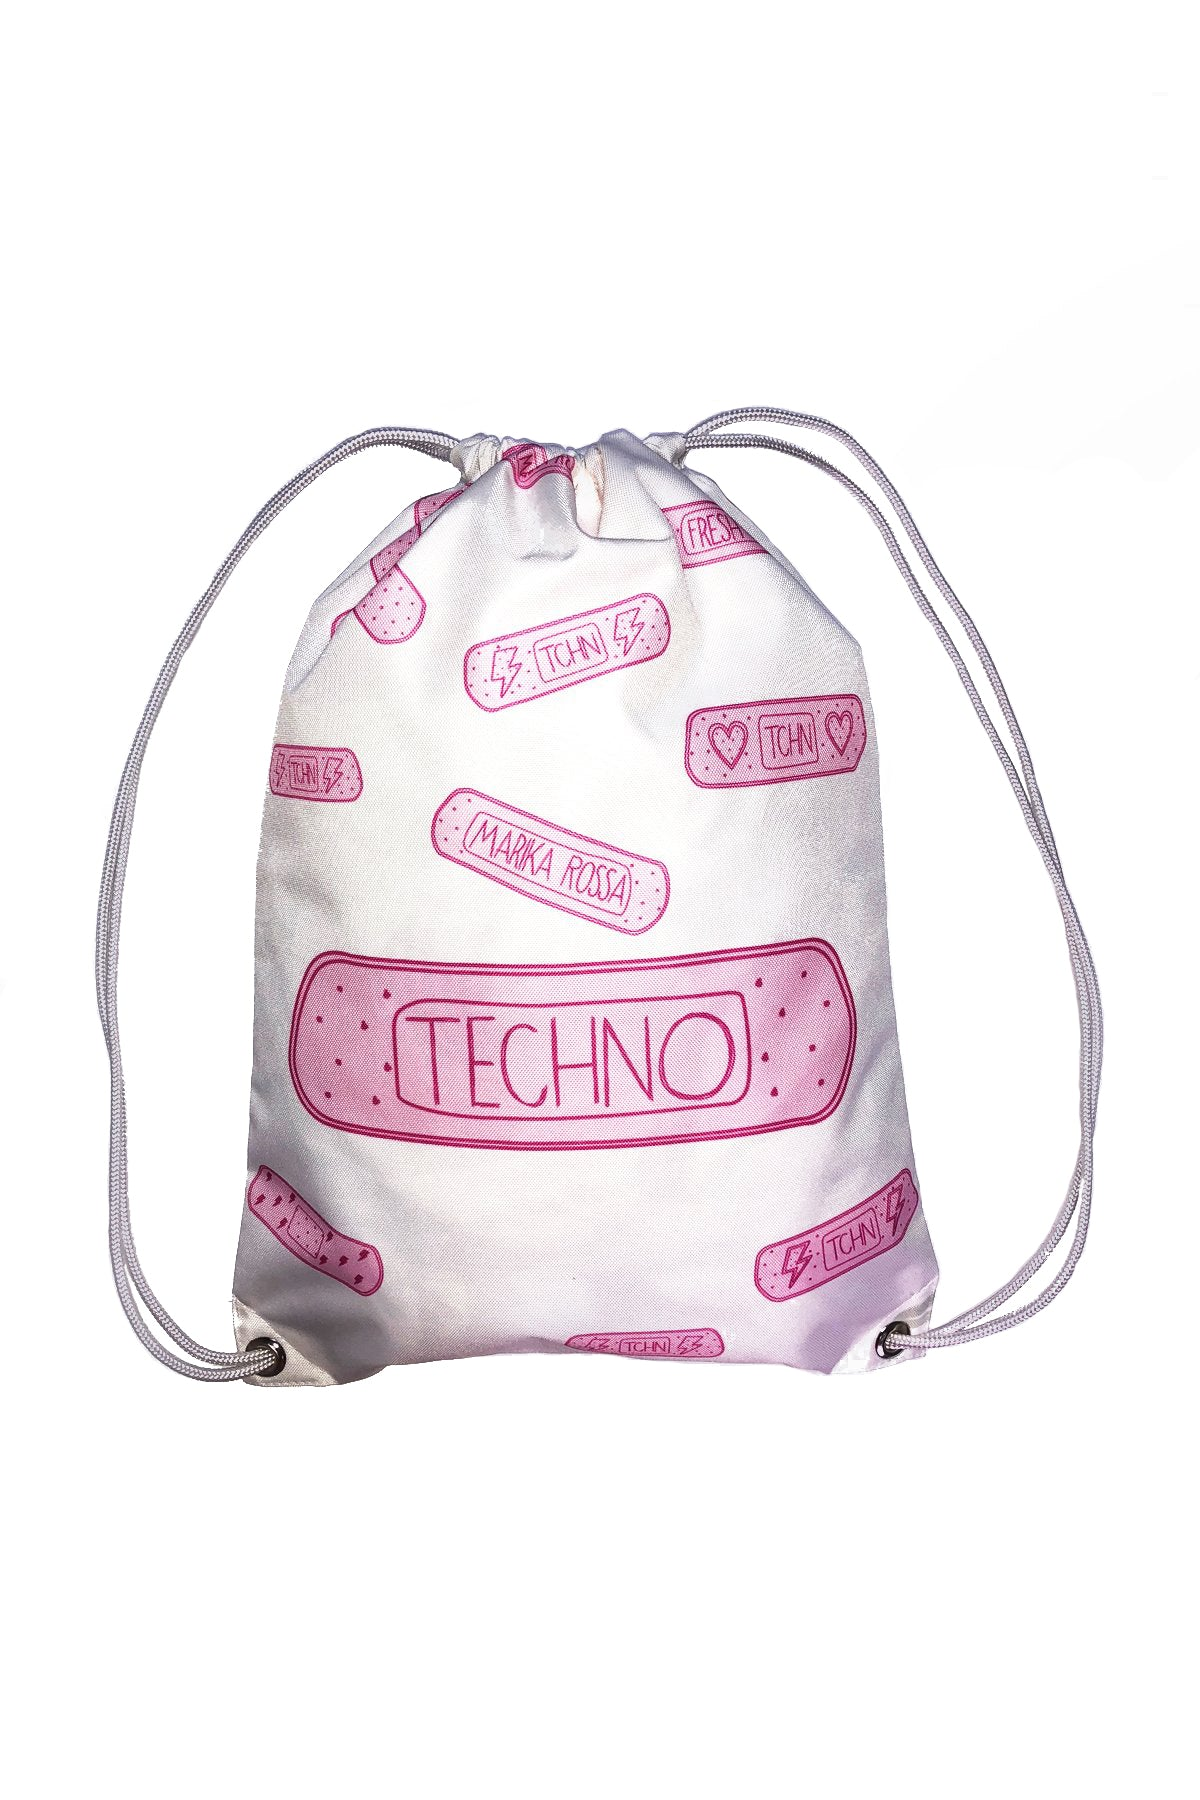 Techno Bandaids Backpacks [White]